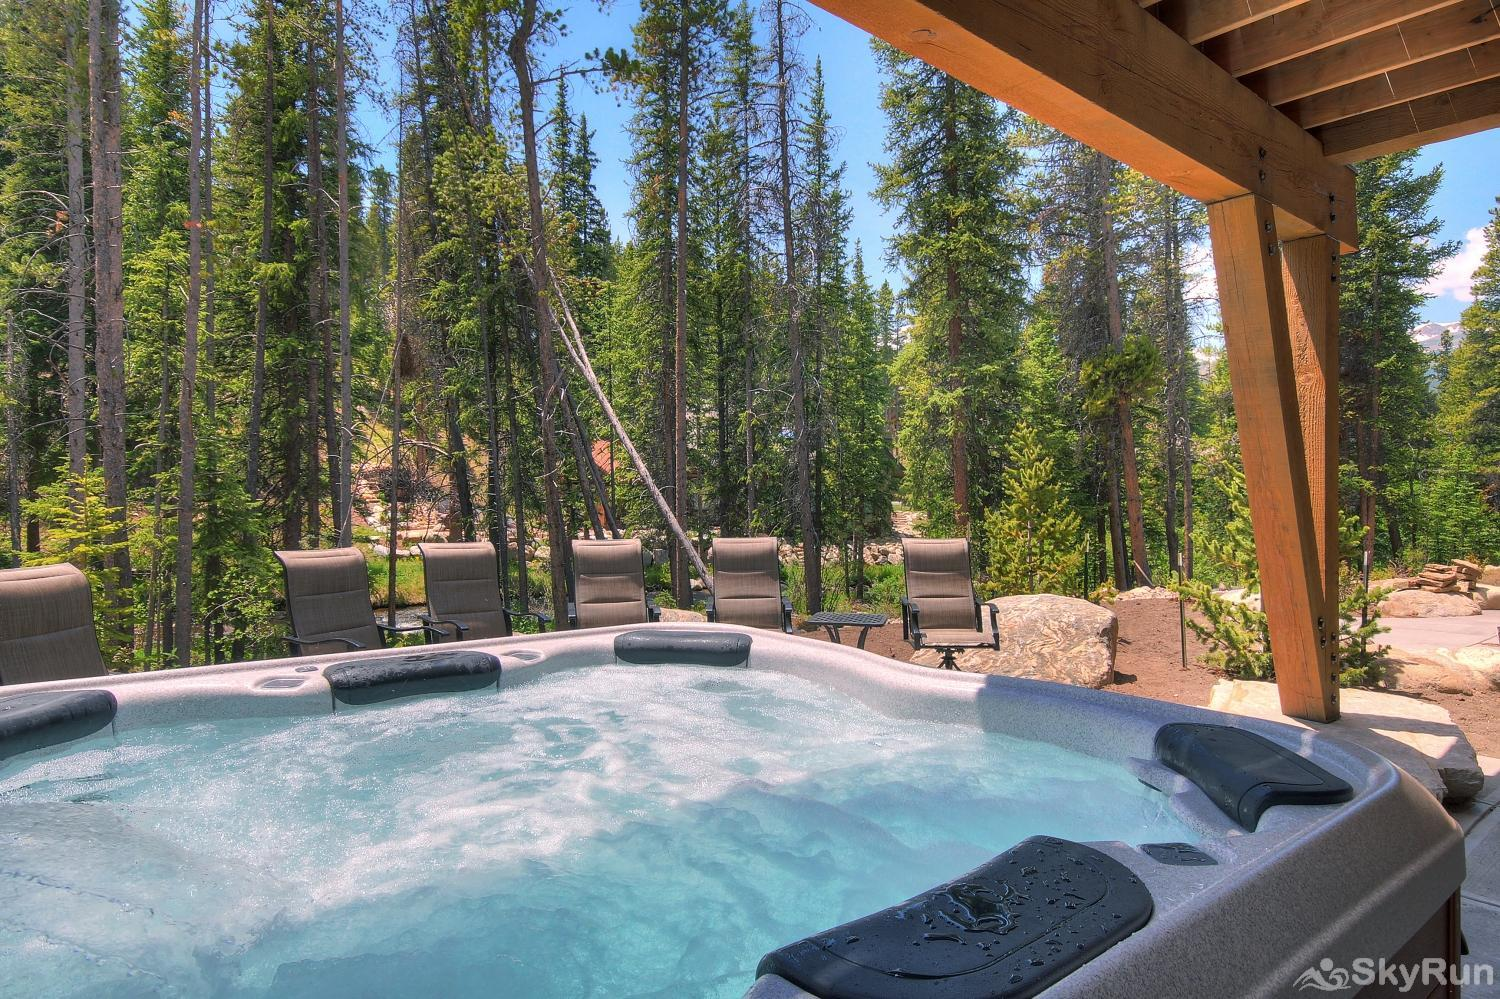 River's Edge Retreat Relax in your private outdoor hot tub!